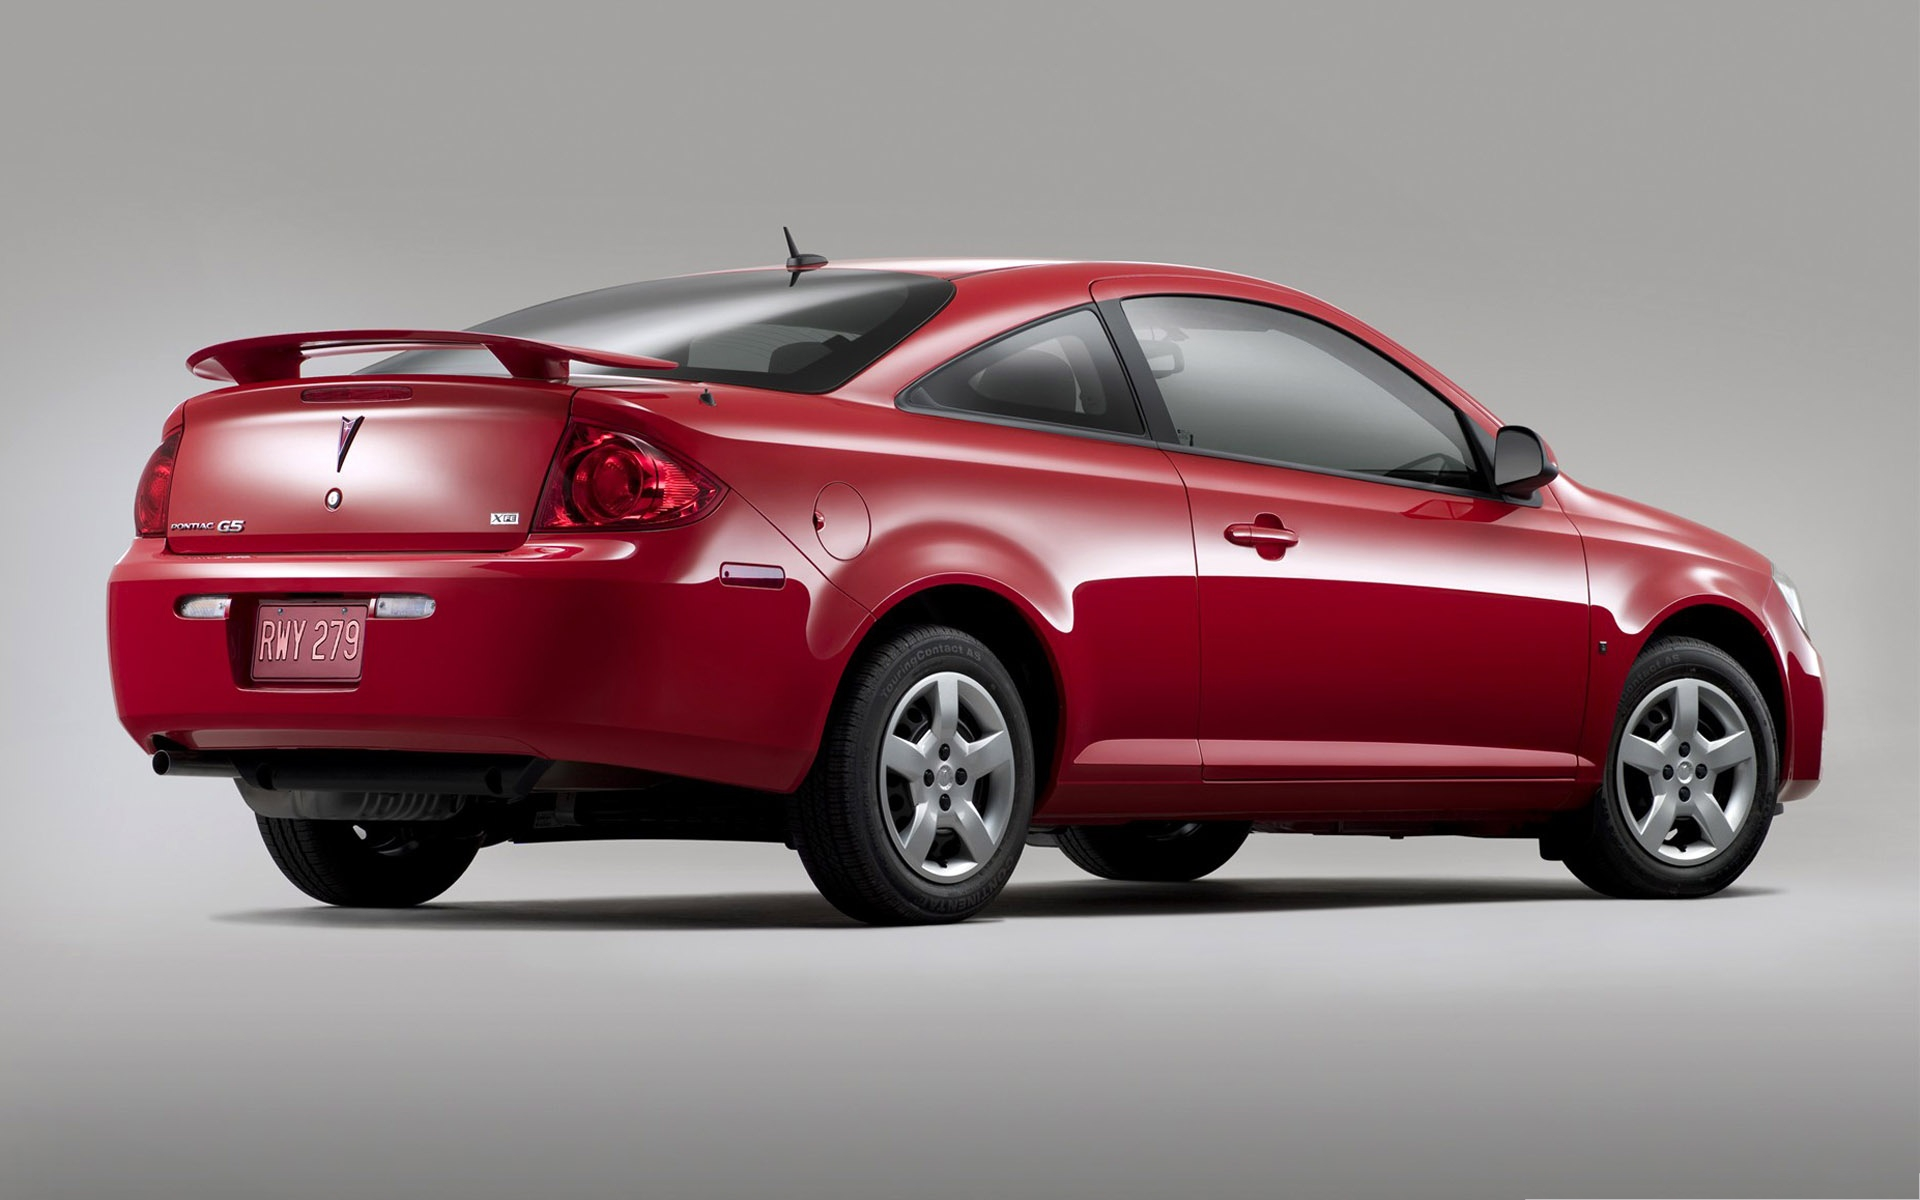 click to free download the wallpaper--Pontiac G5 Car, Red Super Car on Dark Background, Incredible Look 1920X1200 free wallpaper download